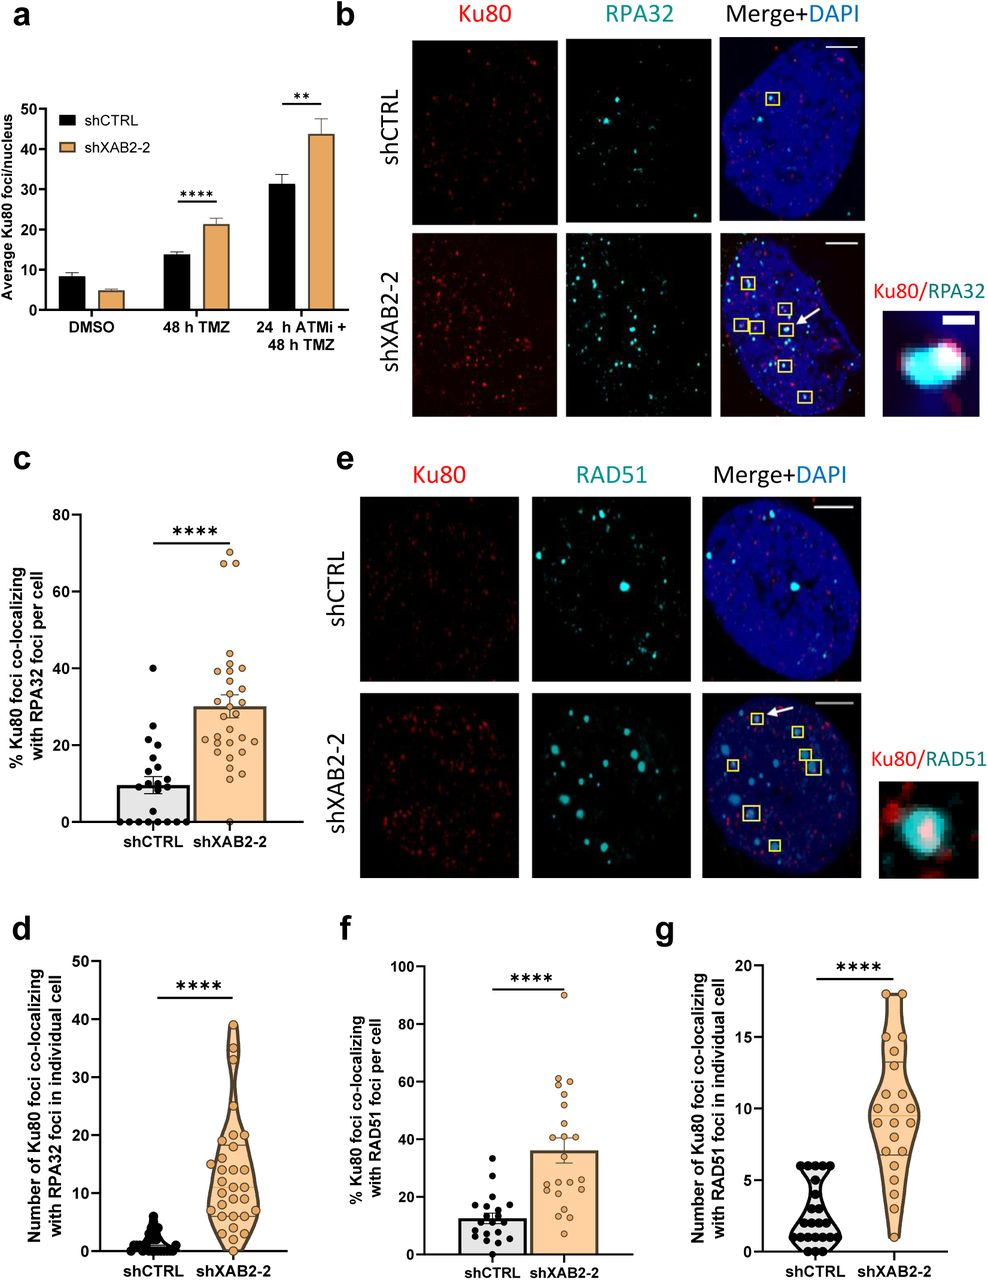 XAB2 prevents Ku retention on seDSBs induced by temozolomide. a , Quantification of the average number of Ku80 foci detected by immunofluorescence microscopy in control and XAB2-depleted U87 cells exposed to 15 μM TMZ (or DMSO) for 2 h and allowed to recover for 48 h in the absence or presence of the ATMi KU-55933. b , Representative immunofluorescence images used for the quantification of the number of colocalizing Ku80 (red)-RPA32 (cyan) foci following exposure of control and XAB2-depleted U87 cells to TMZ and recovery for 48 h. Examples of colocalized foci are highlighted by yellow squares, with one representative example (indicated by an arrow) shown in the close up section (scale bar = 0.1 μm). c - d , Percentage of colocalized Ku80-RPA32 foci per cell following exposure to TMZ as in c , quantified based on foci examination in individual cells, as presented in a violin plot ( d ). e - g , Same as b - d for the analysis of Ku80 (red) and RAD51 (cyan) foci colocalization. Scale bar = 5µm. The images are representative of 3 independent biological repeats. Bars represent mean ± s.e.m. Significant differences between specified comparisons were assessed by a t-test (unpaired, 2-tails) and are highlighted by stars (*P